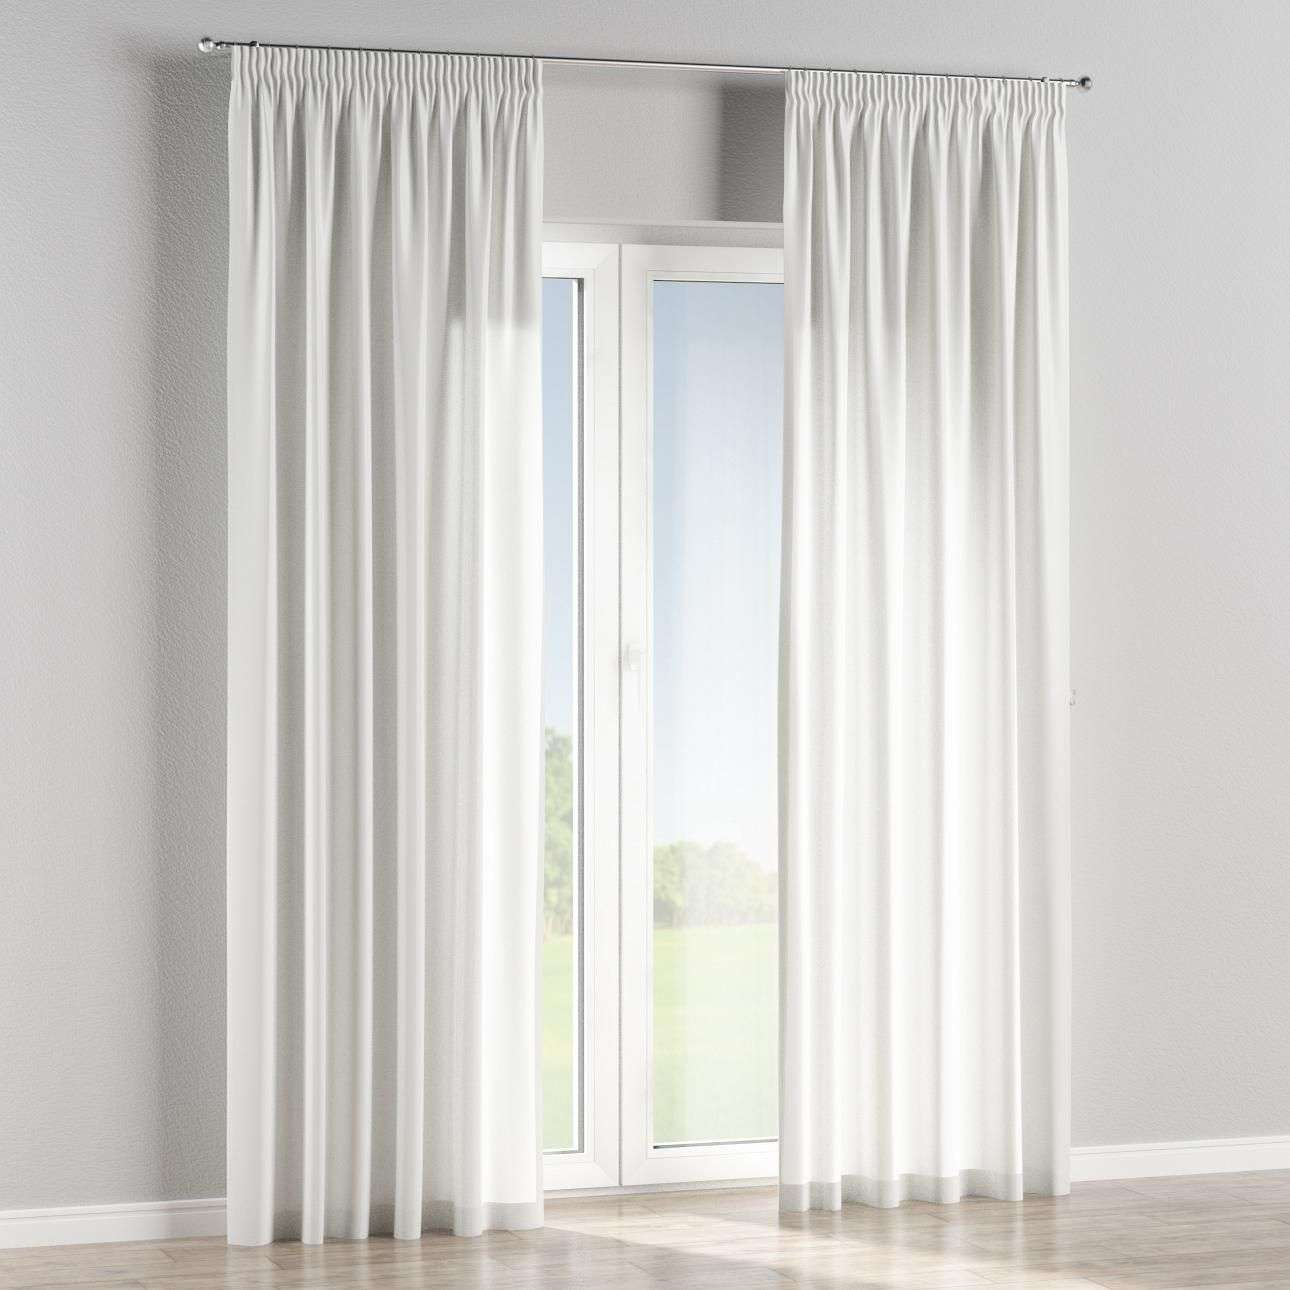 Pencil pleat lined curtains in collection Rustica, fabric: 138-15